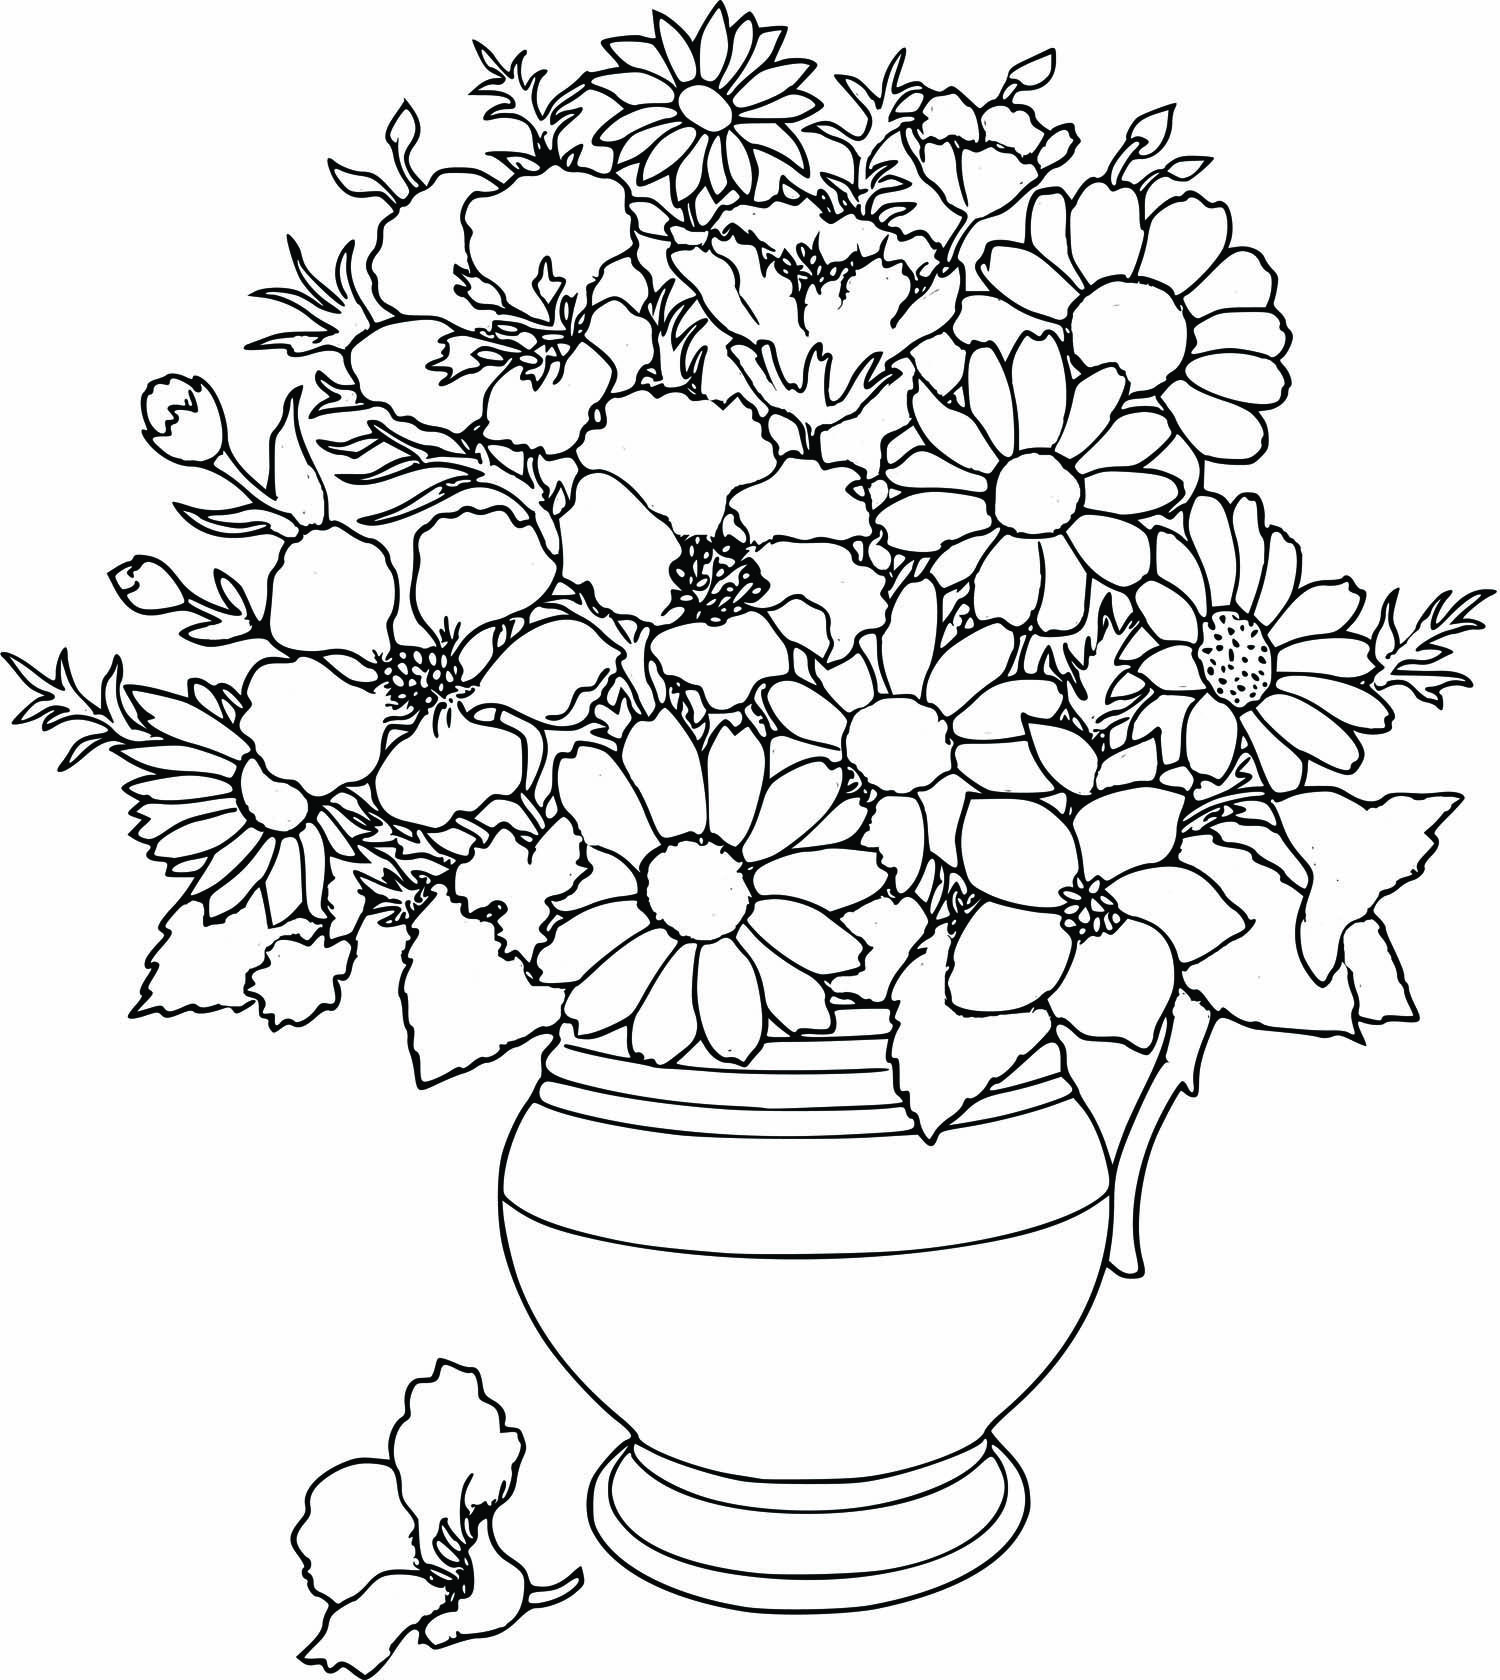 coloring pages amusing flower coloring pages flowers coloring pages flower coloring pages for adults flower coloring pages to print out